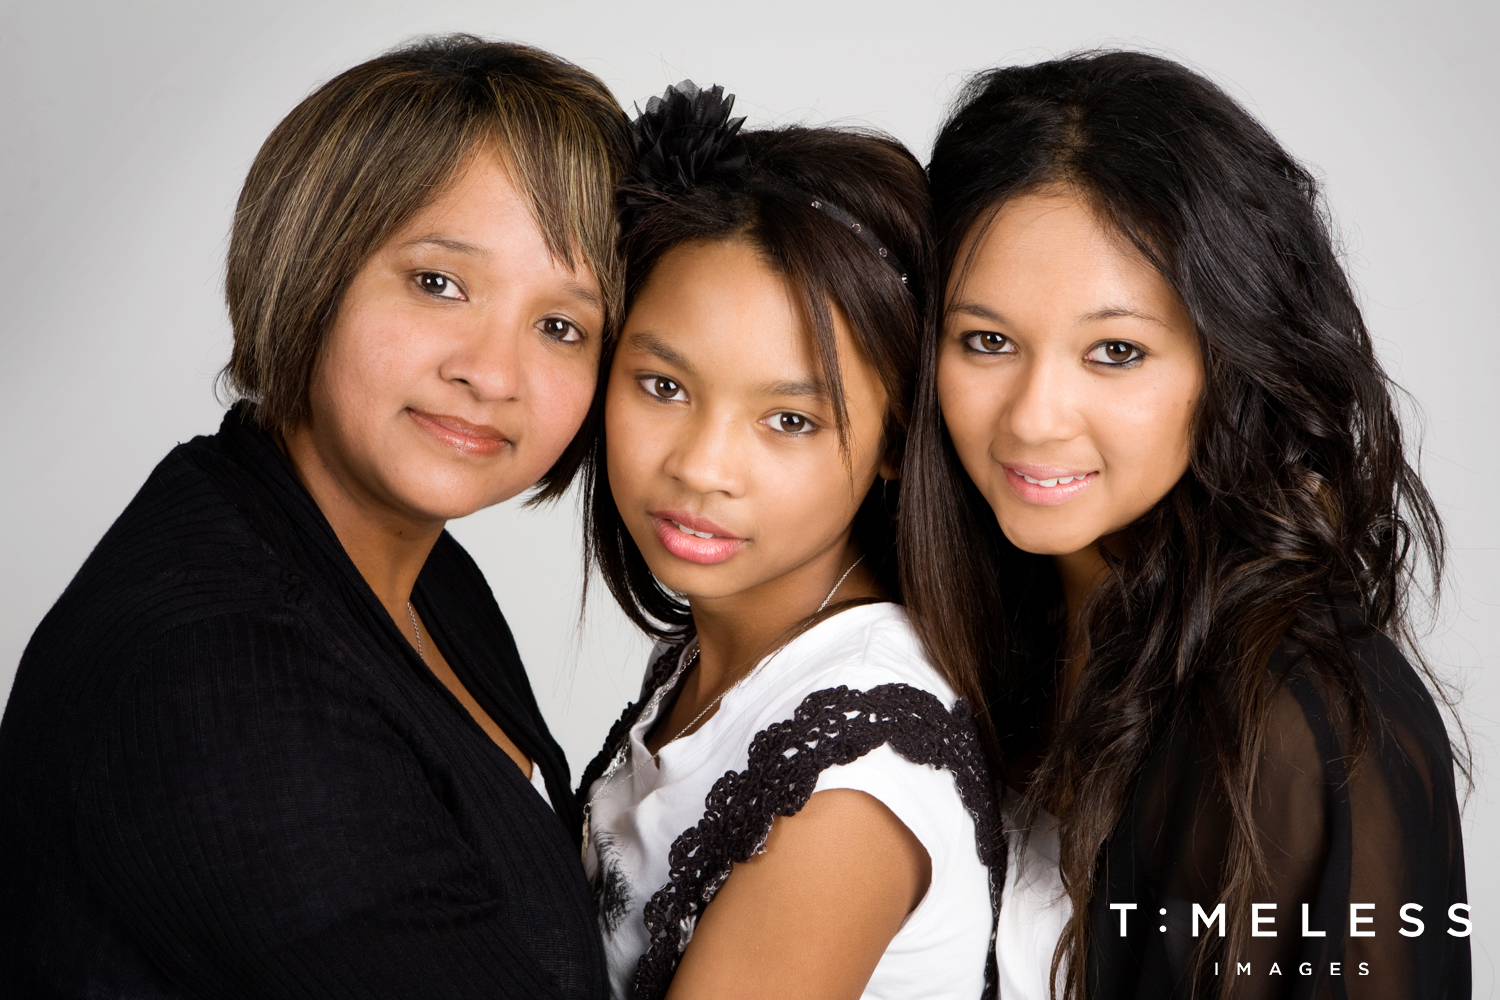 Family Portrait - Mum and Daughters